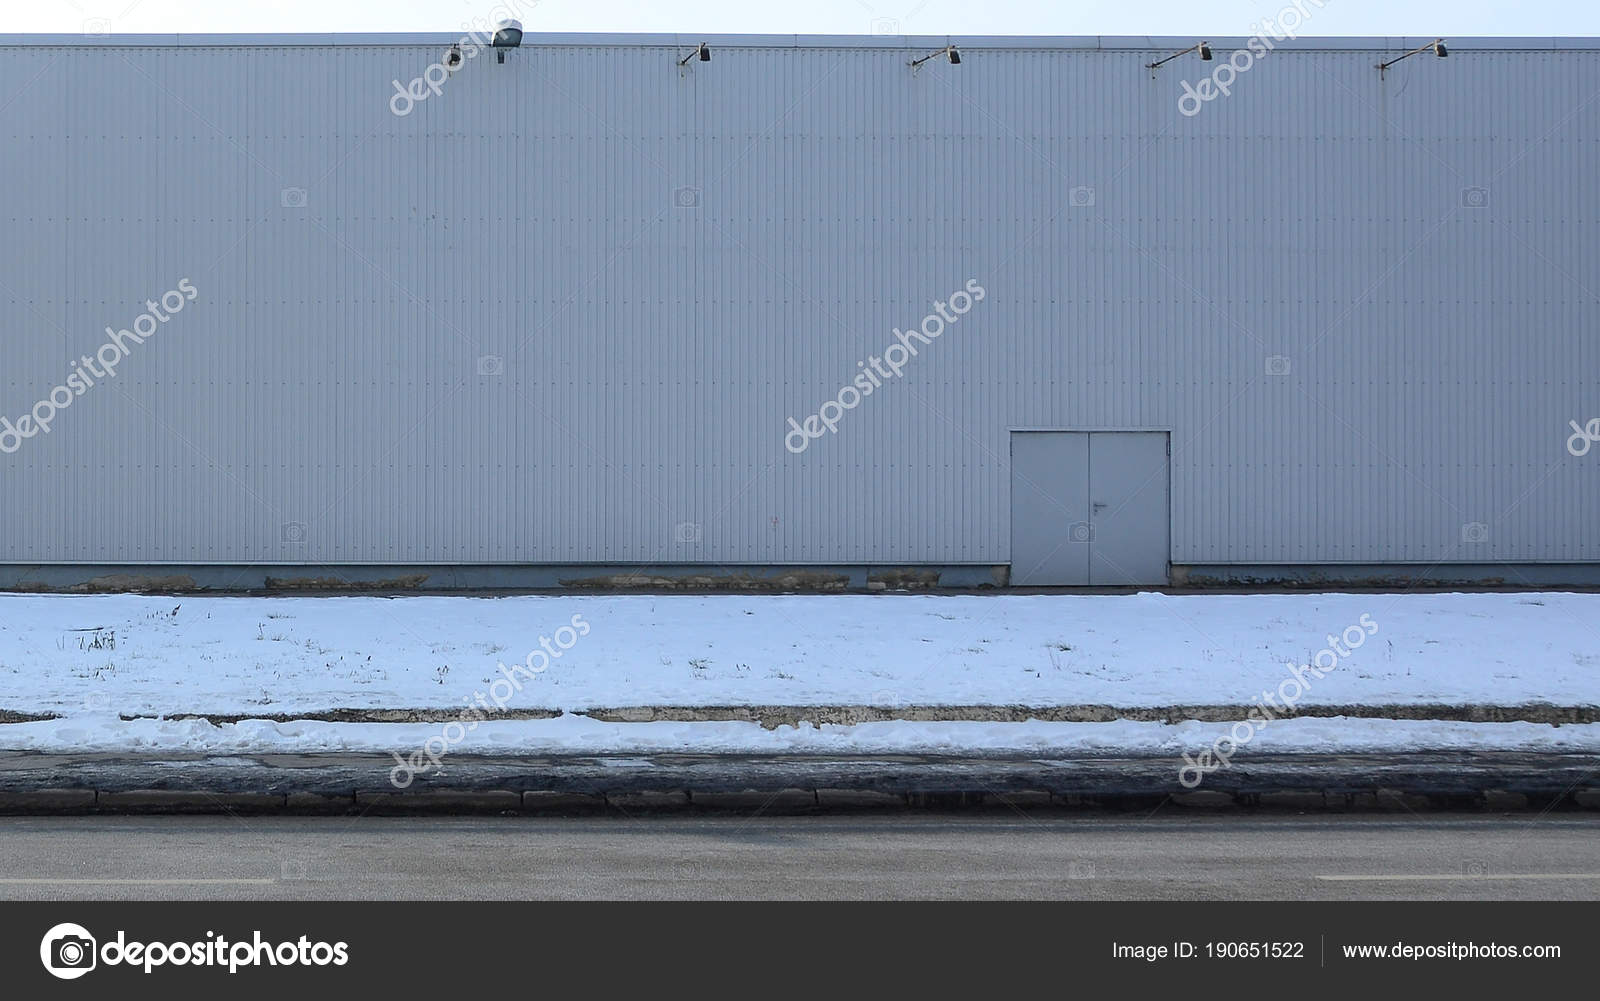 Industrial garage door texture Garage Gate Texture High Metal Wall Industrial Building Windows Stock Photo Depositphotos Texture High Metal Wall Industrial Building Windows Stock Photo